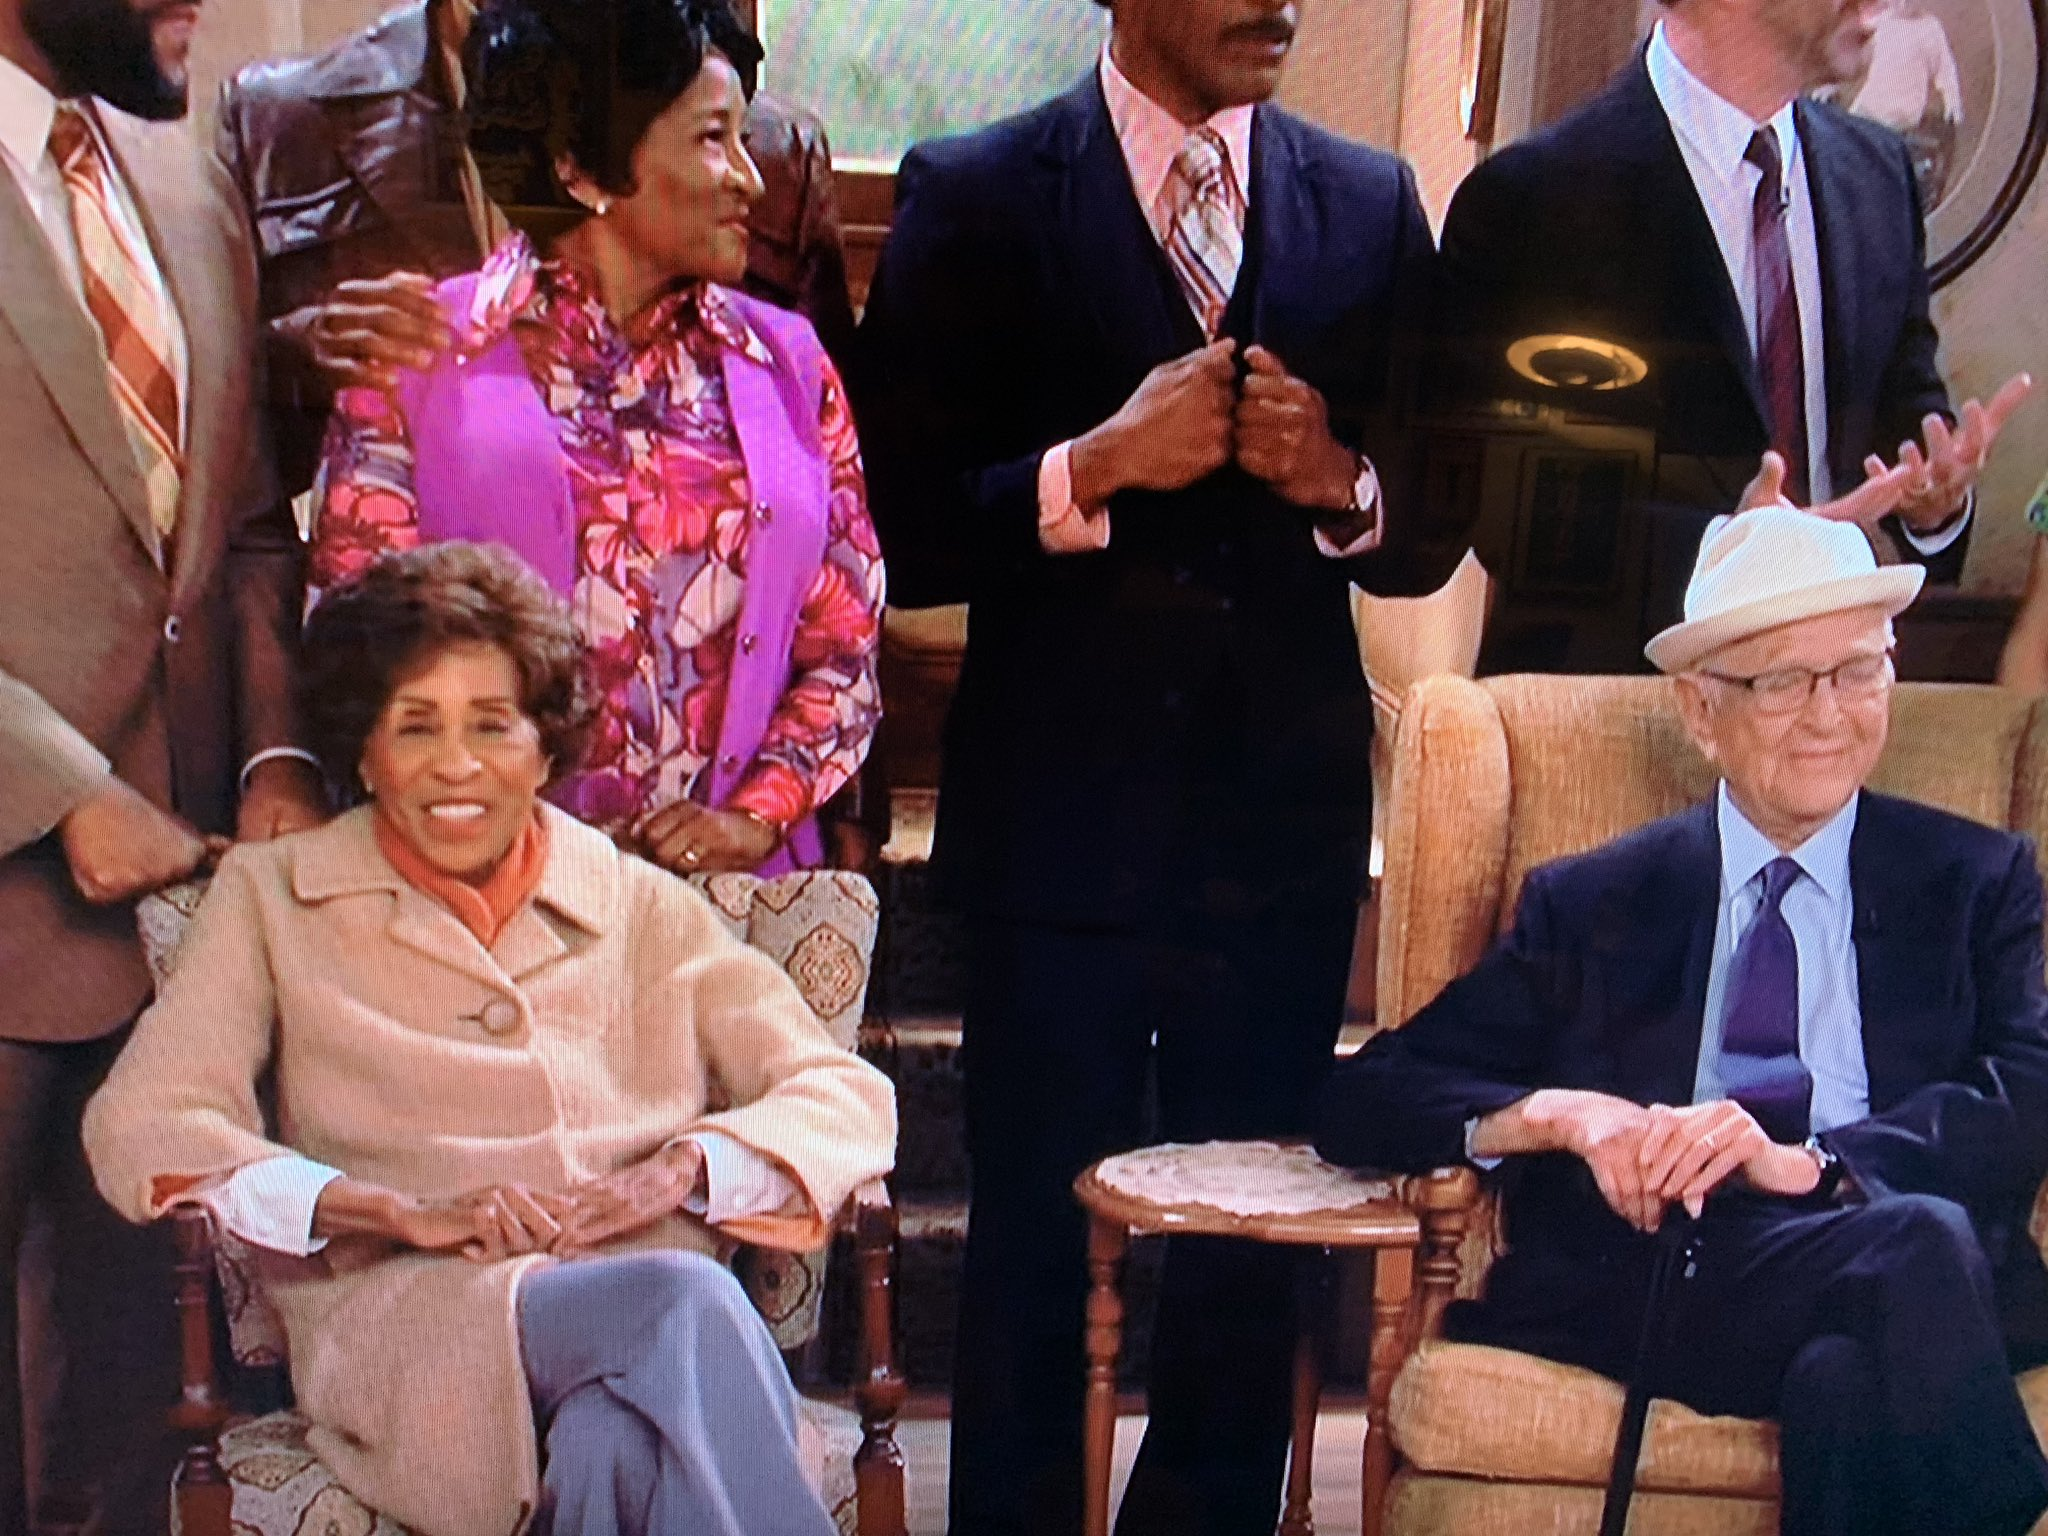 Marla Gibbs and @TheNormanLear live on @ABCNetwork! Legends! Thank you for the memories. #LiveInFrontOfAStudioAudience https://t.co/FhLGJ1w9yI